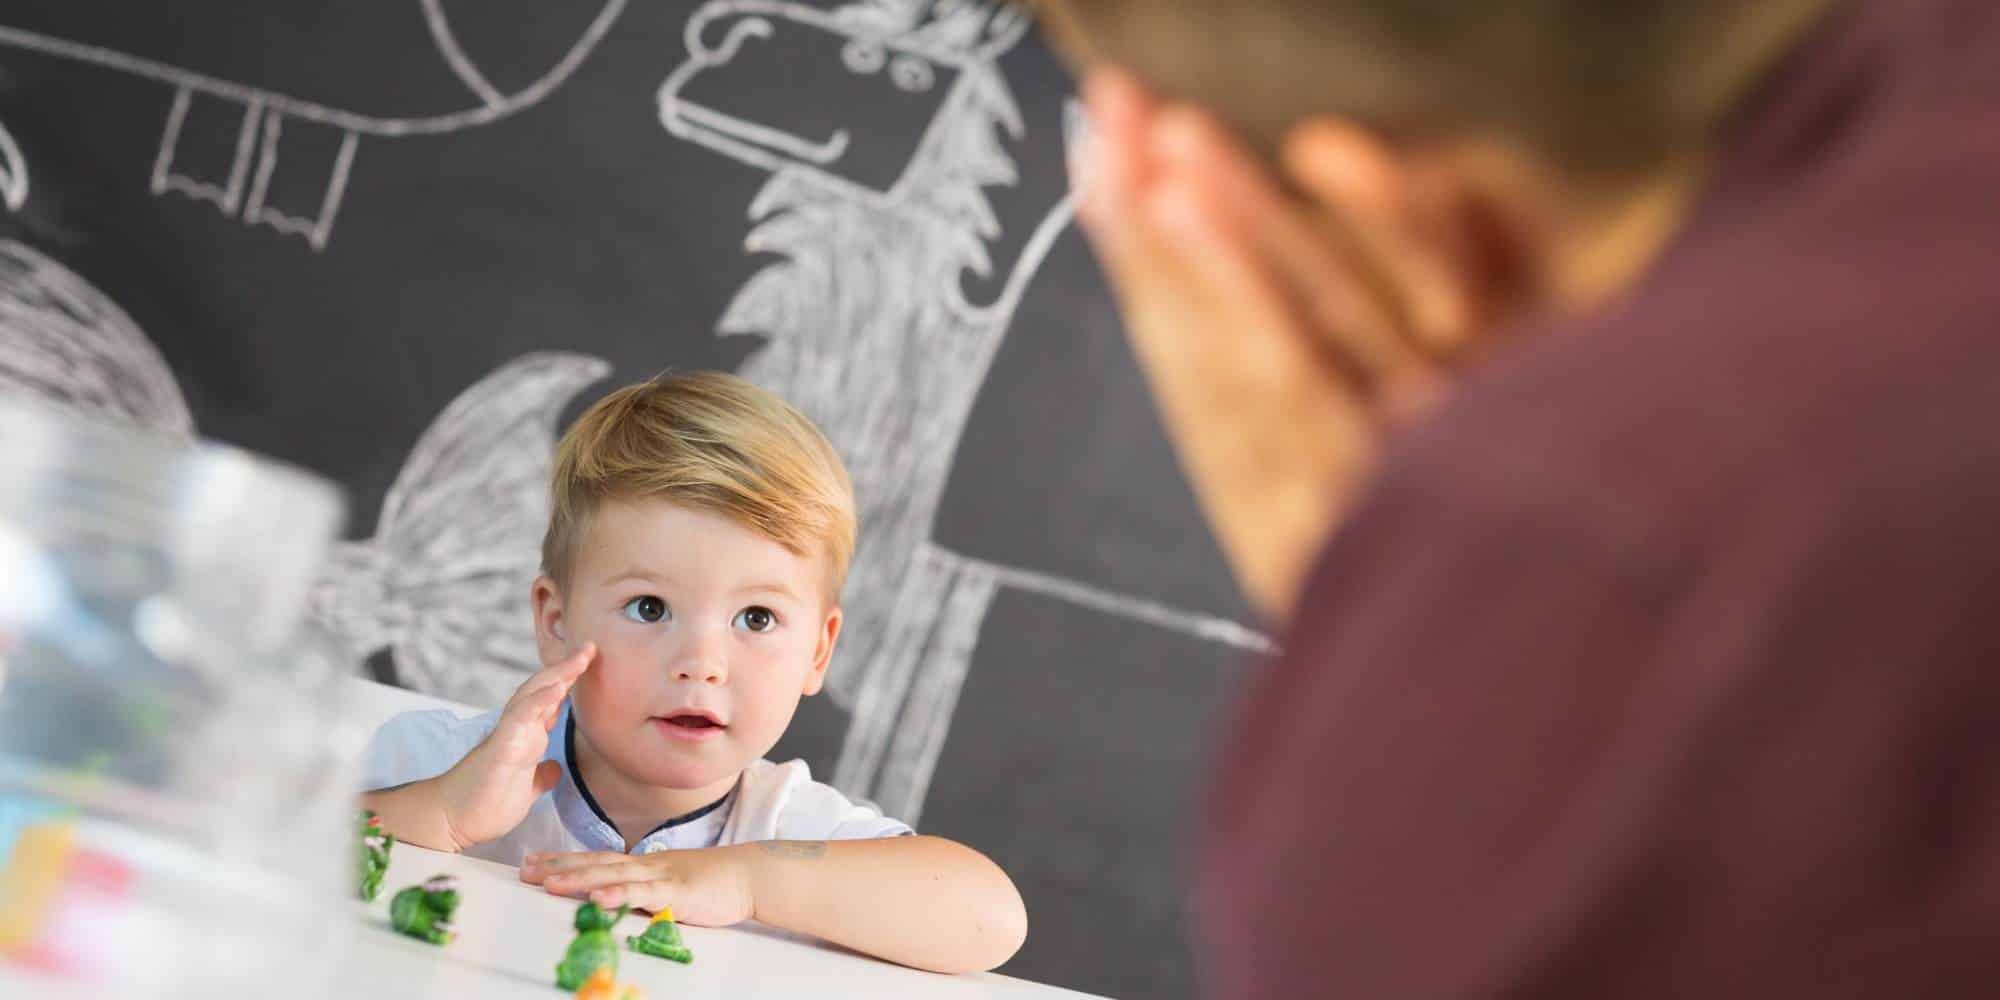 Child looking at teacher with small toys on table between them | social skills and overall child development